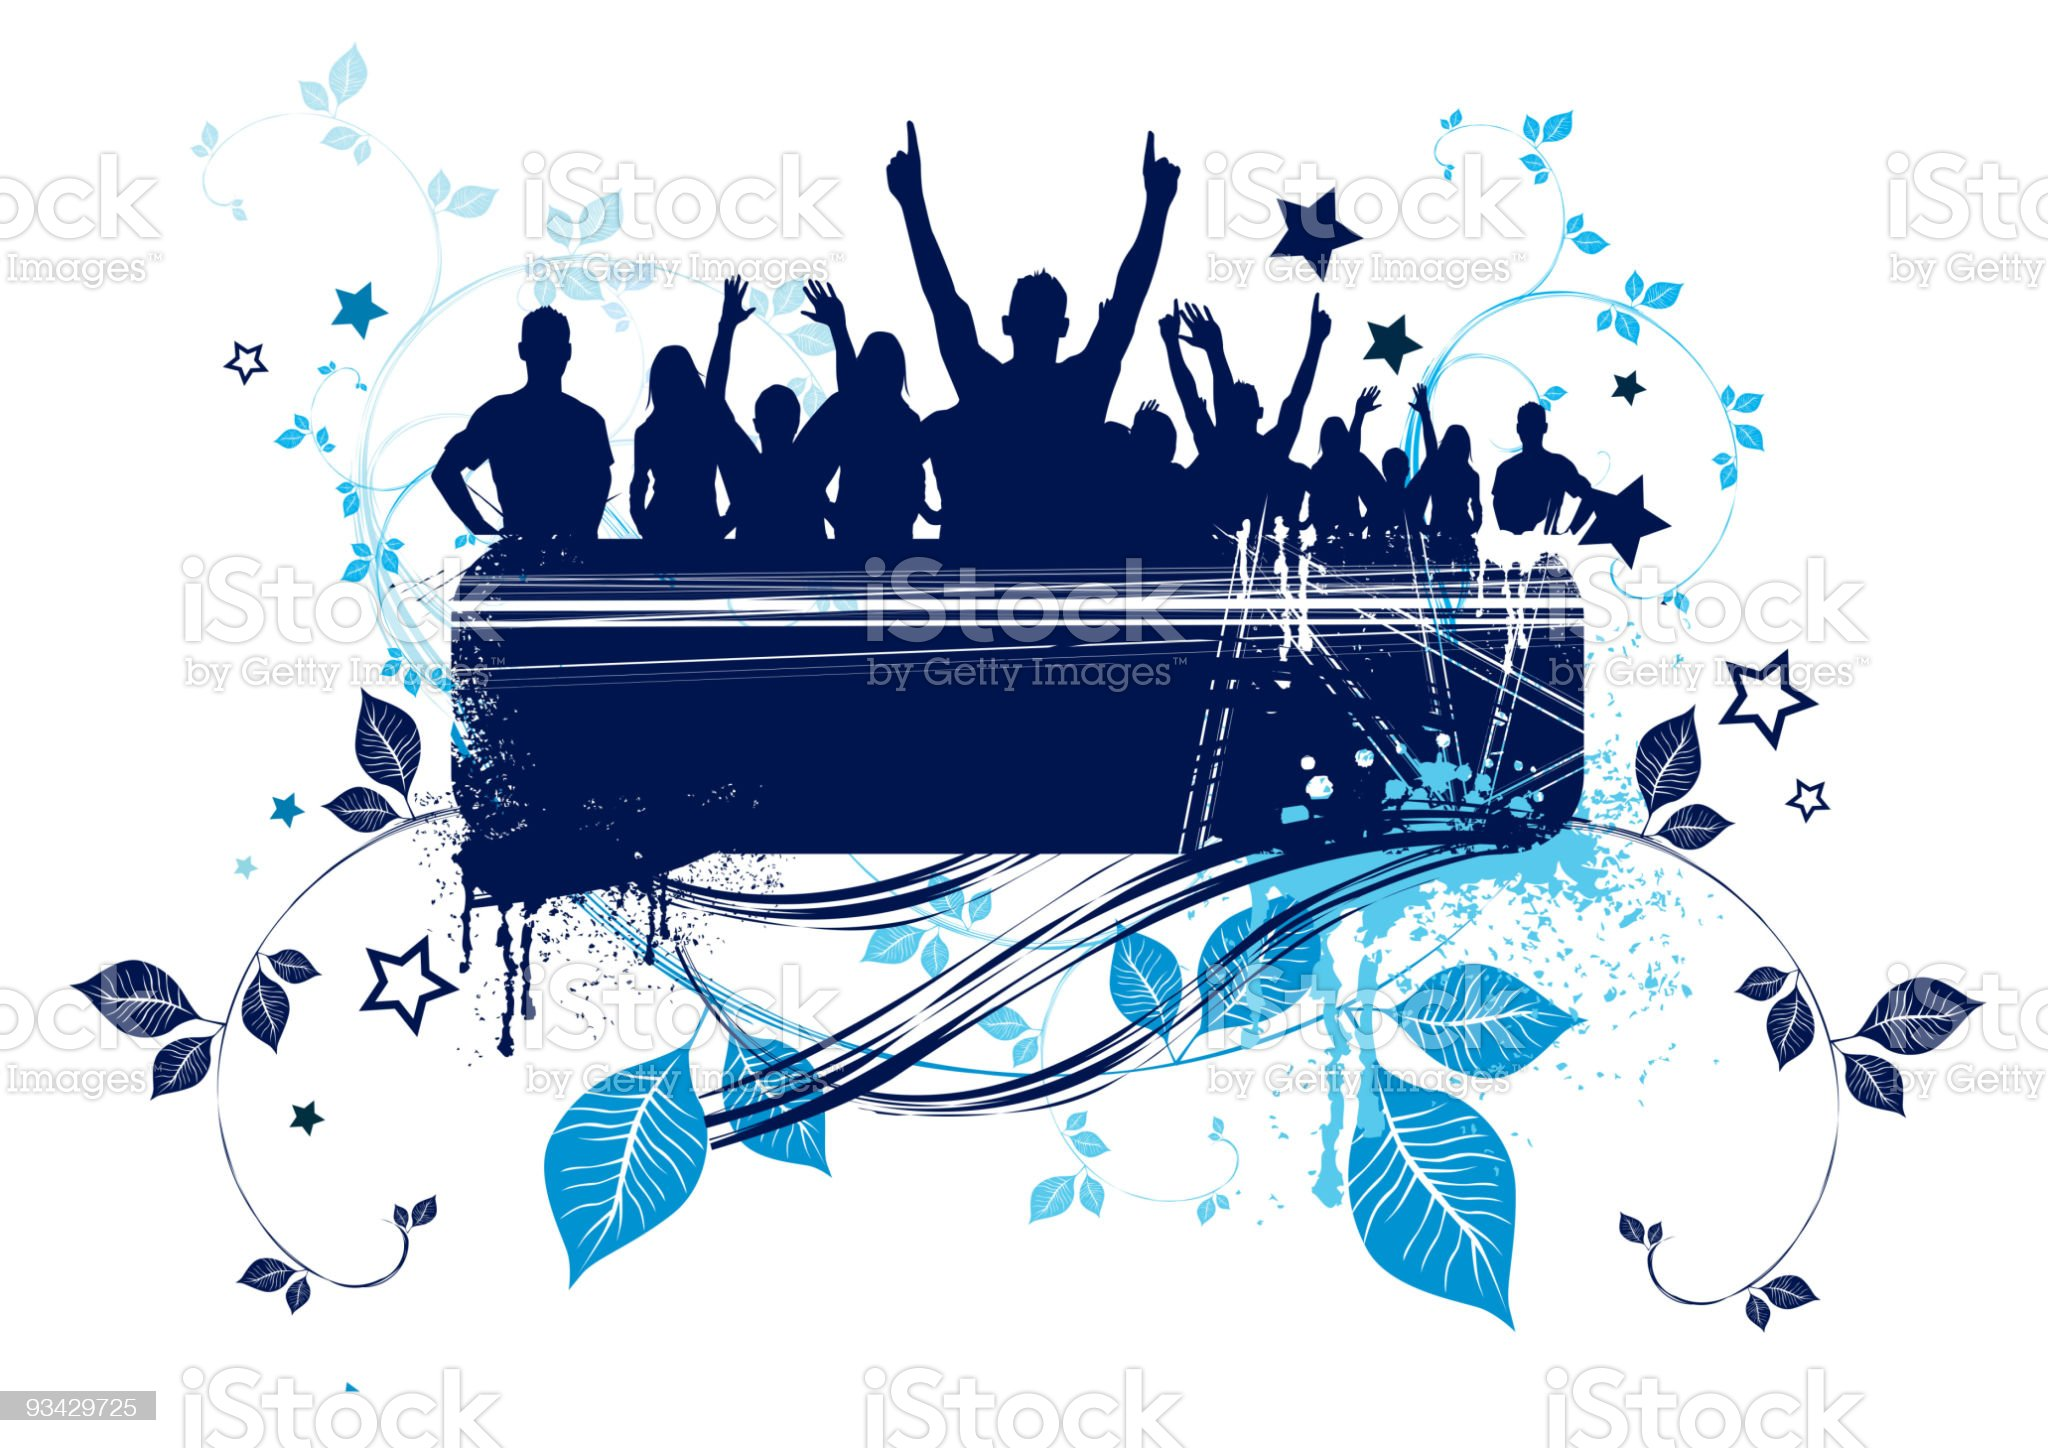 Grunge Crowd Design royalty-free stock vector art